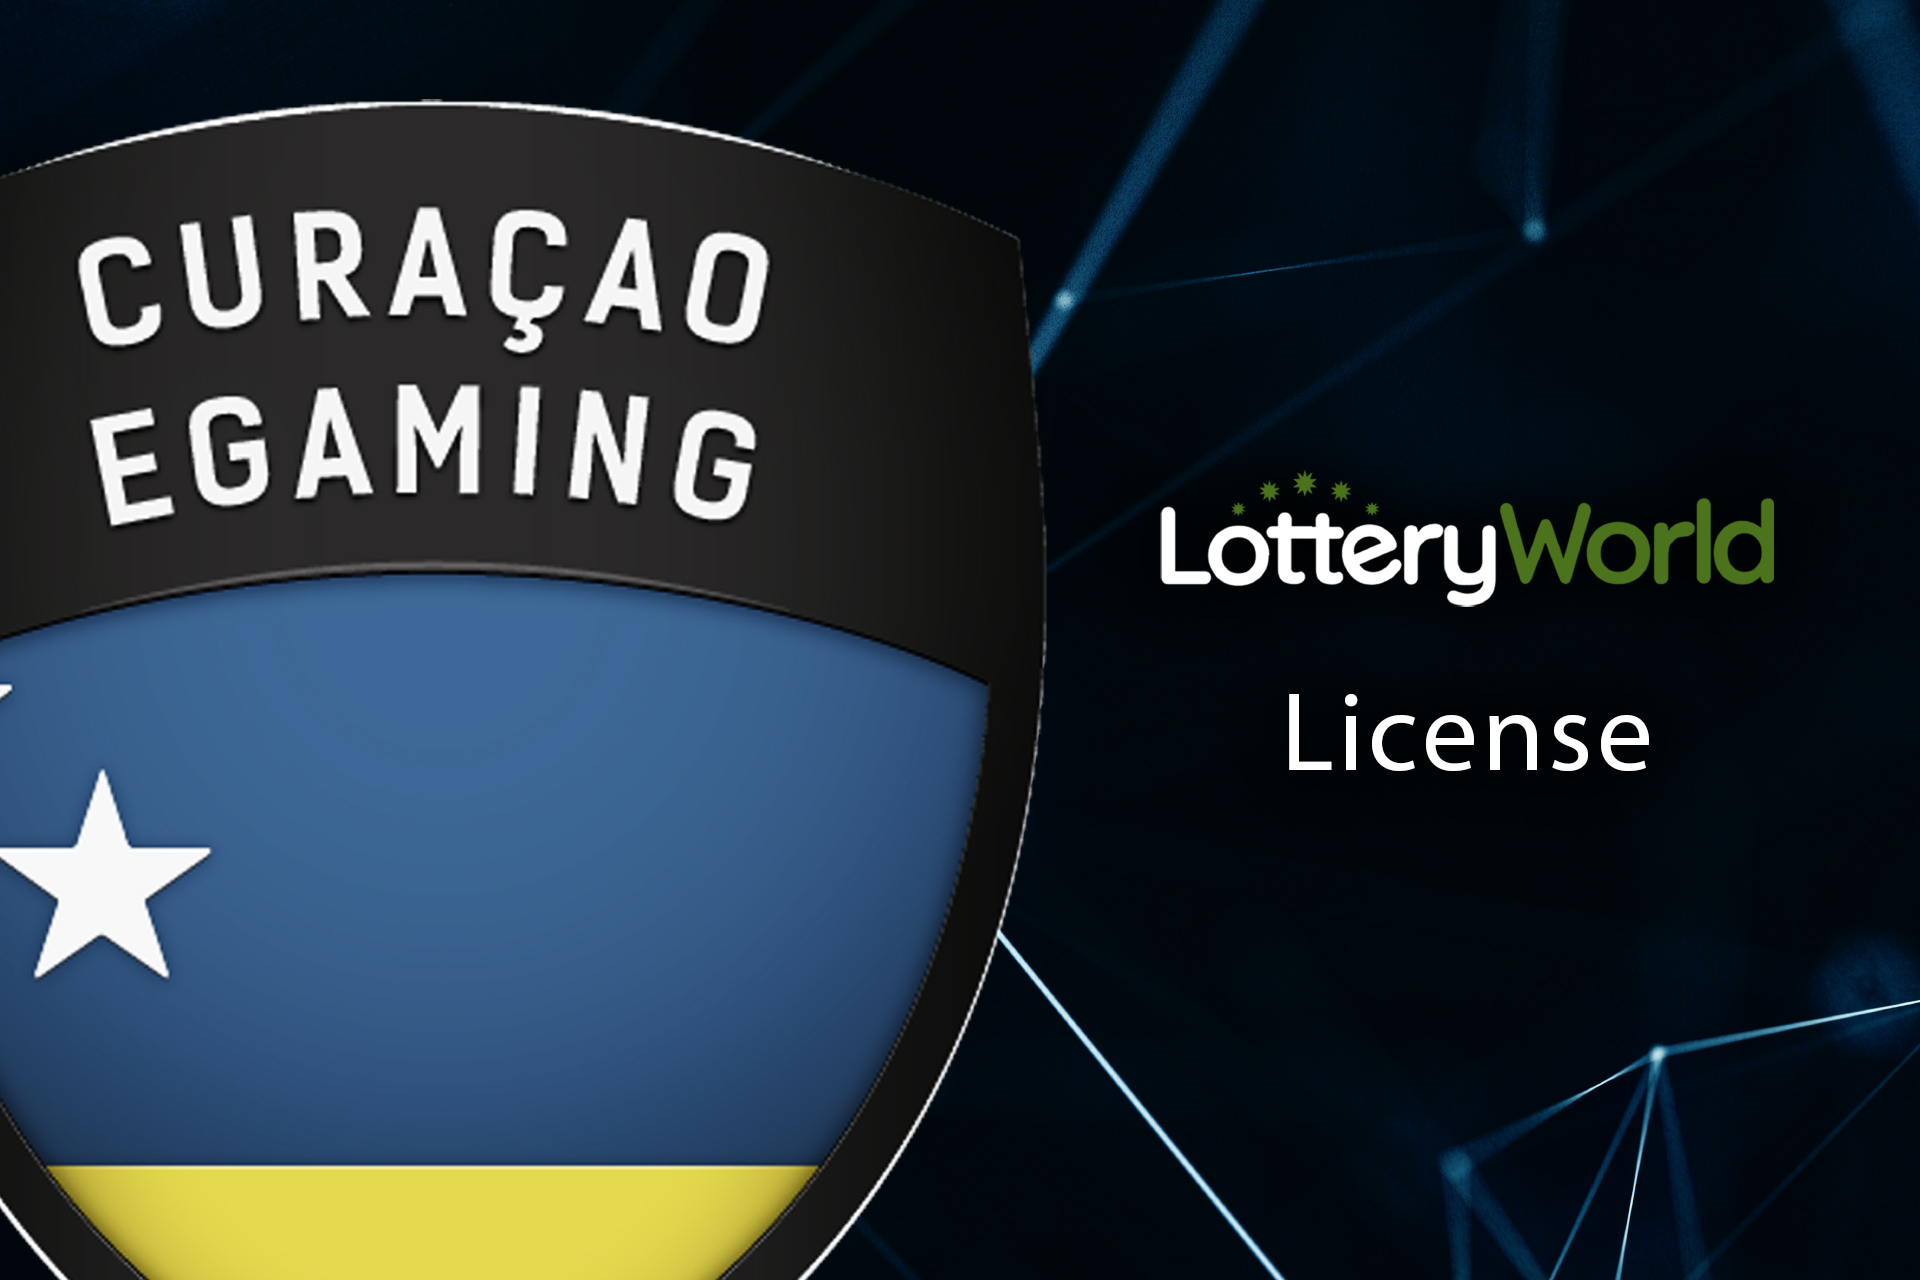 LotteryWorld works under the Curacao license, so you can be that this is a trustworthy and safe site.